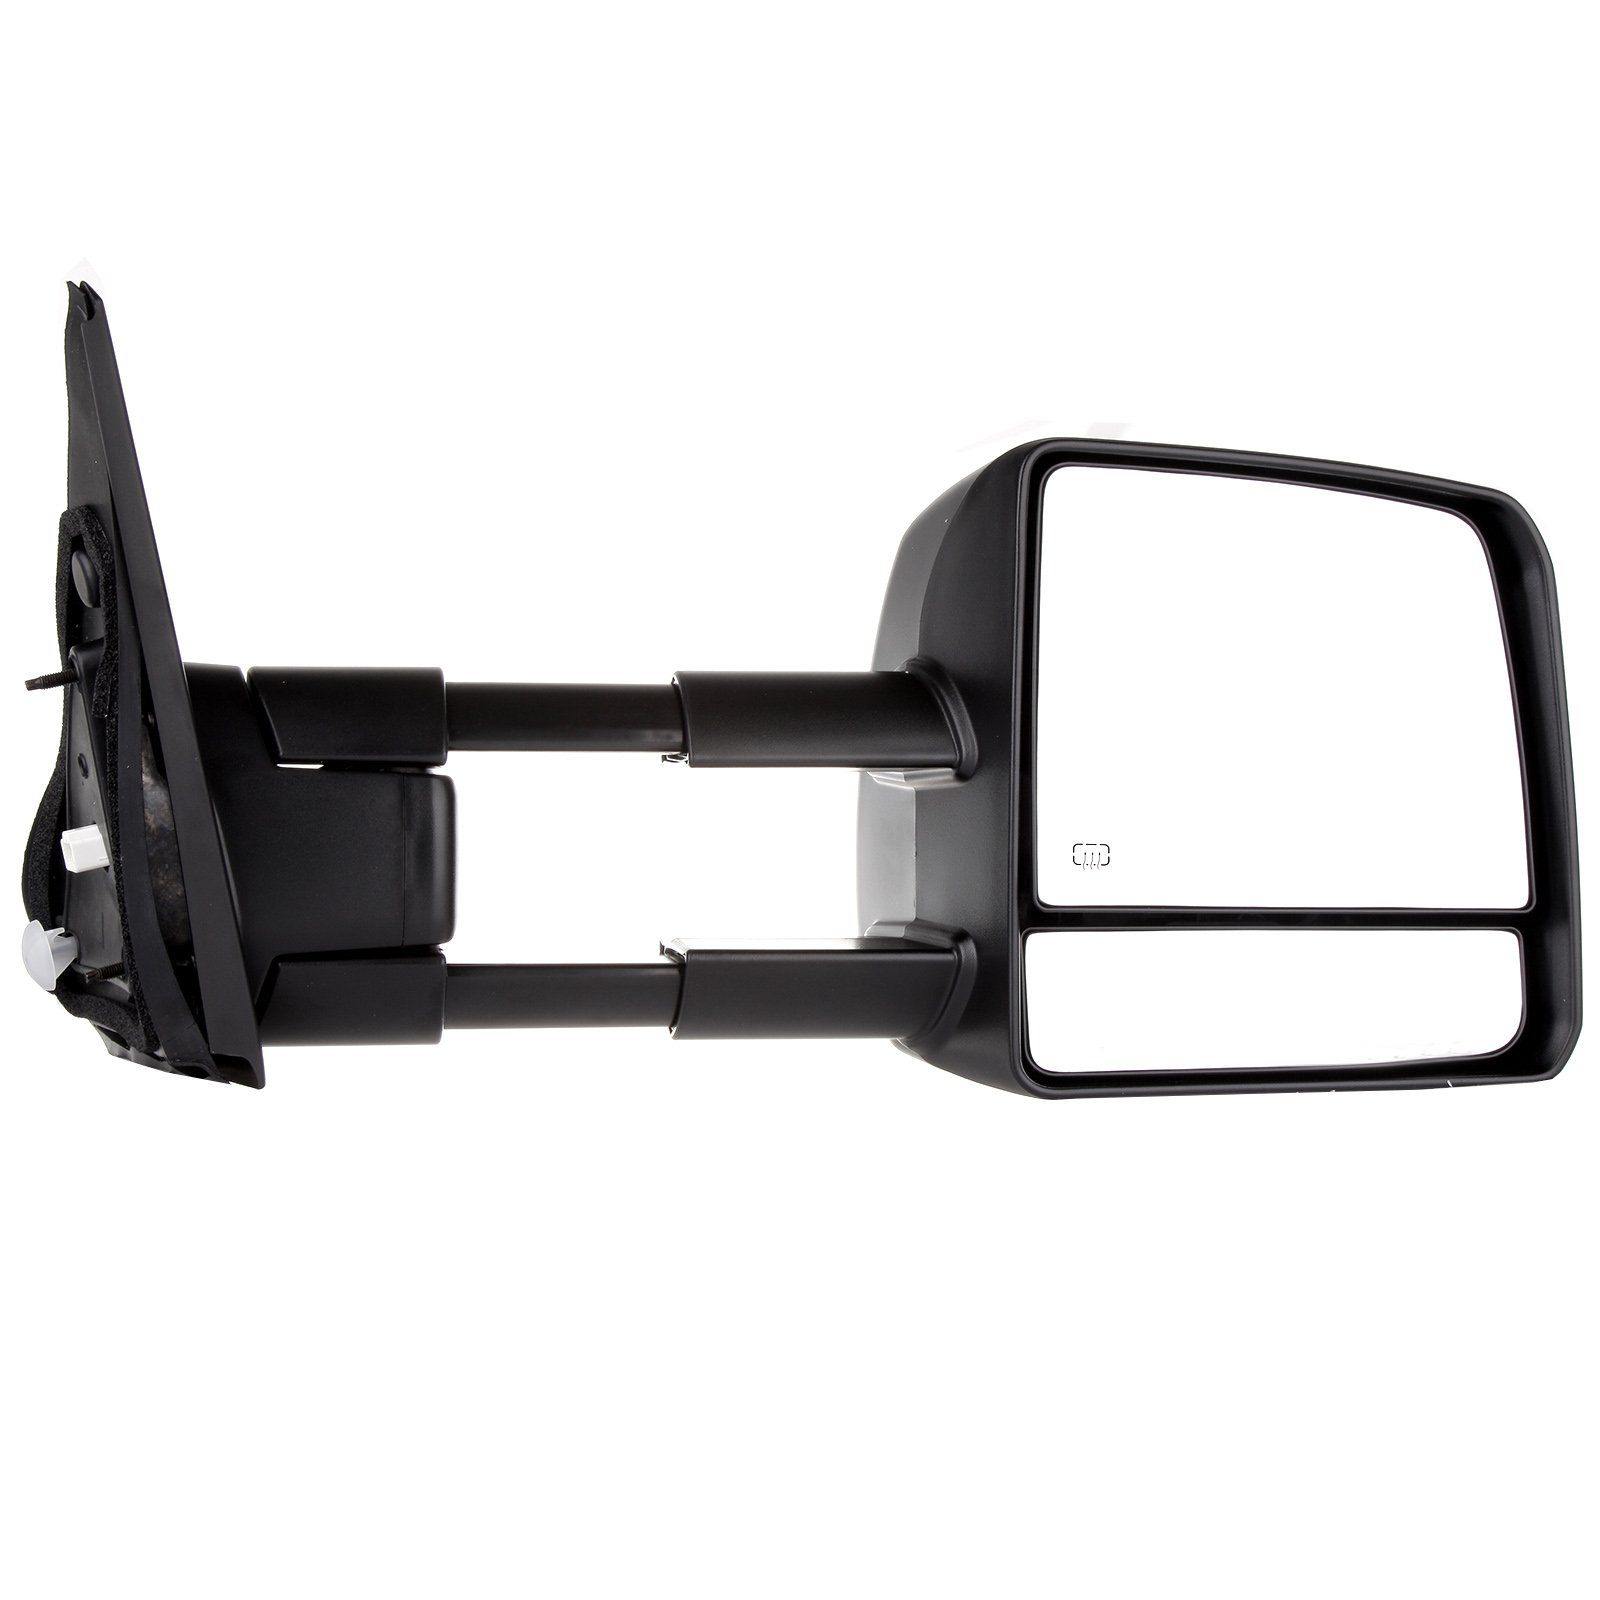 SCITOO fit Toyota Towing Mirrors Rear View Mirrors fit 2007-2016 Toyota Tundra Truck Larger Glass Power Control, Heated Turn Signal Manual Extending Folding (black) by SCITOO (Image #5)